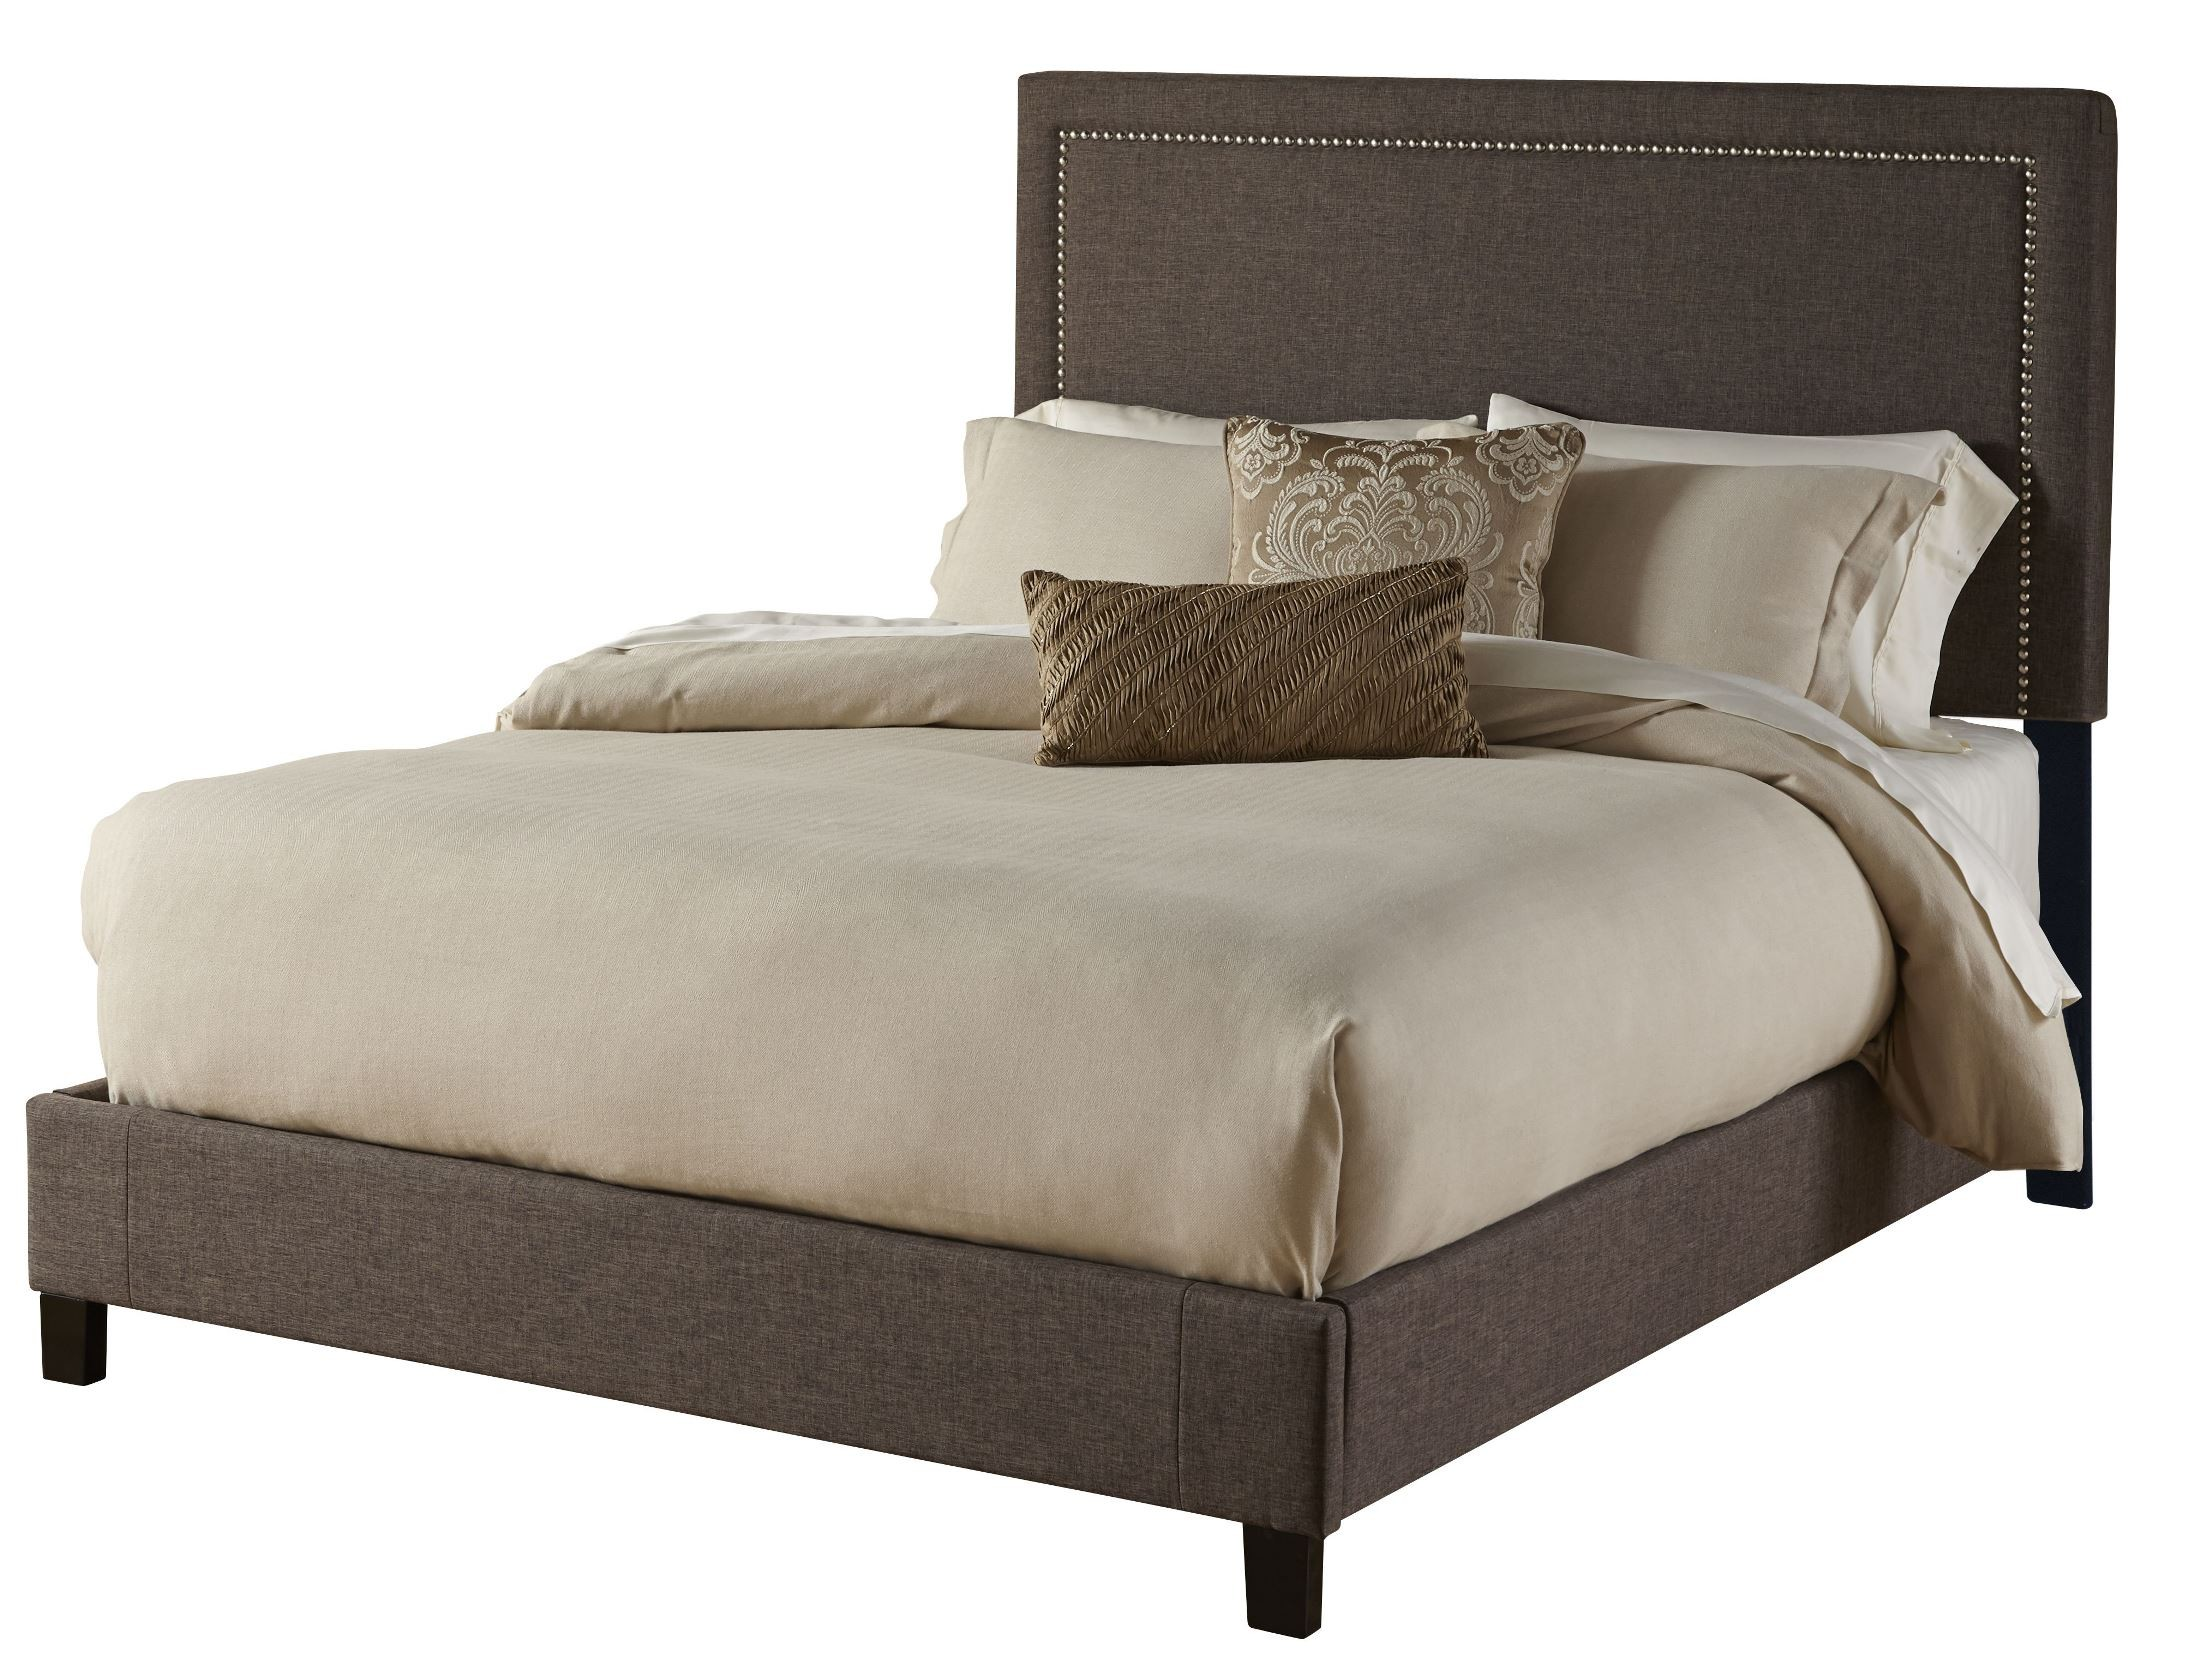 Square Nailhead King Upholstered Platform Bed Ds 270